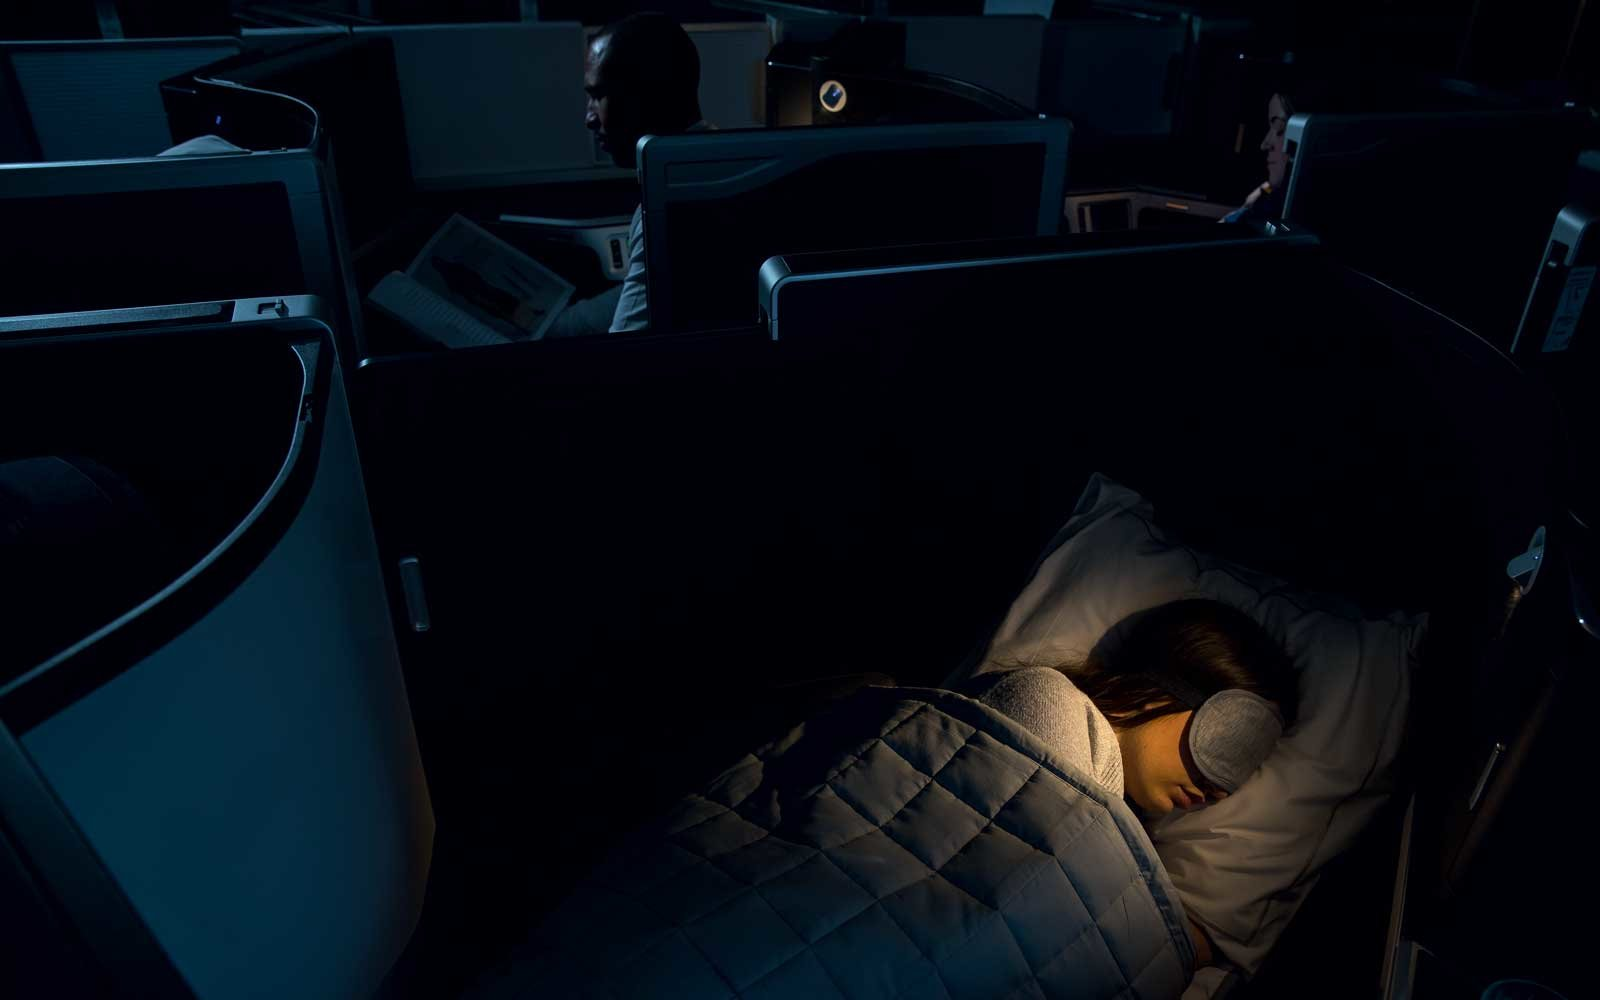 British Airways Business Class